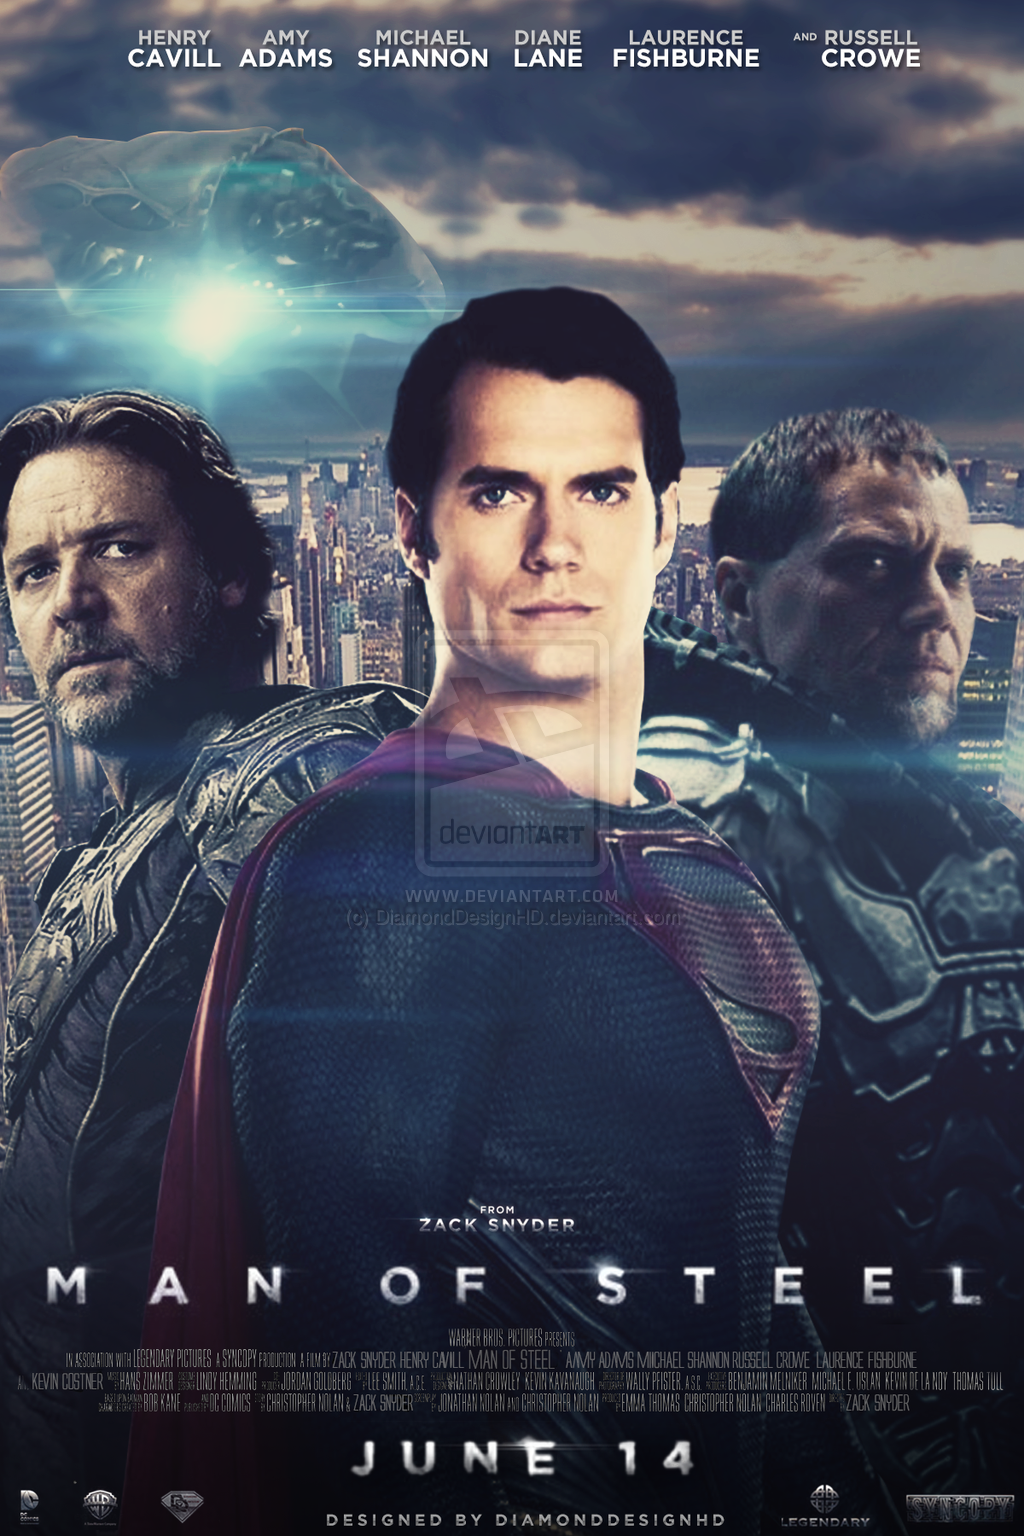 Poster design wikipedia - Poster Design Wikipedia Man Of Steel Fan Made Poster Design V9 By Diamonddesignhd D5wc9oz 1